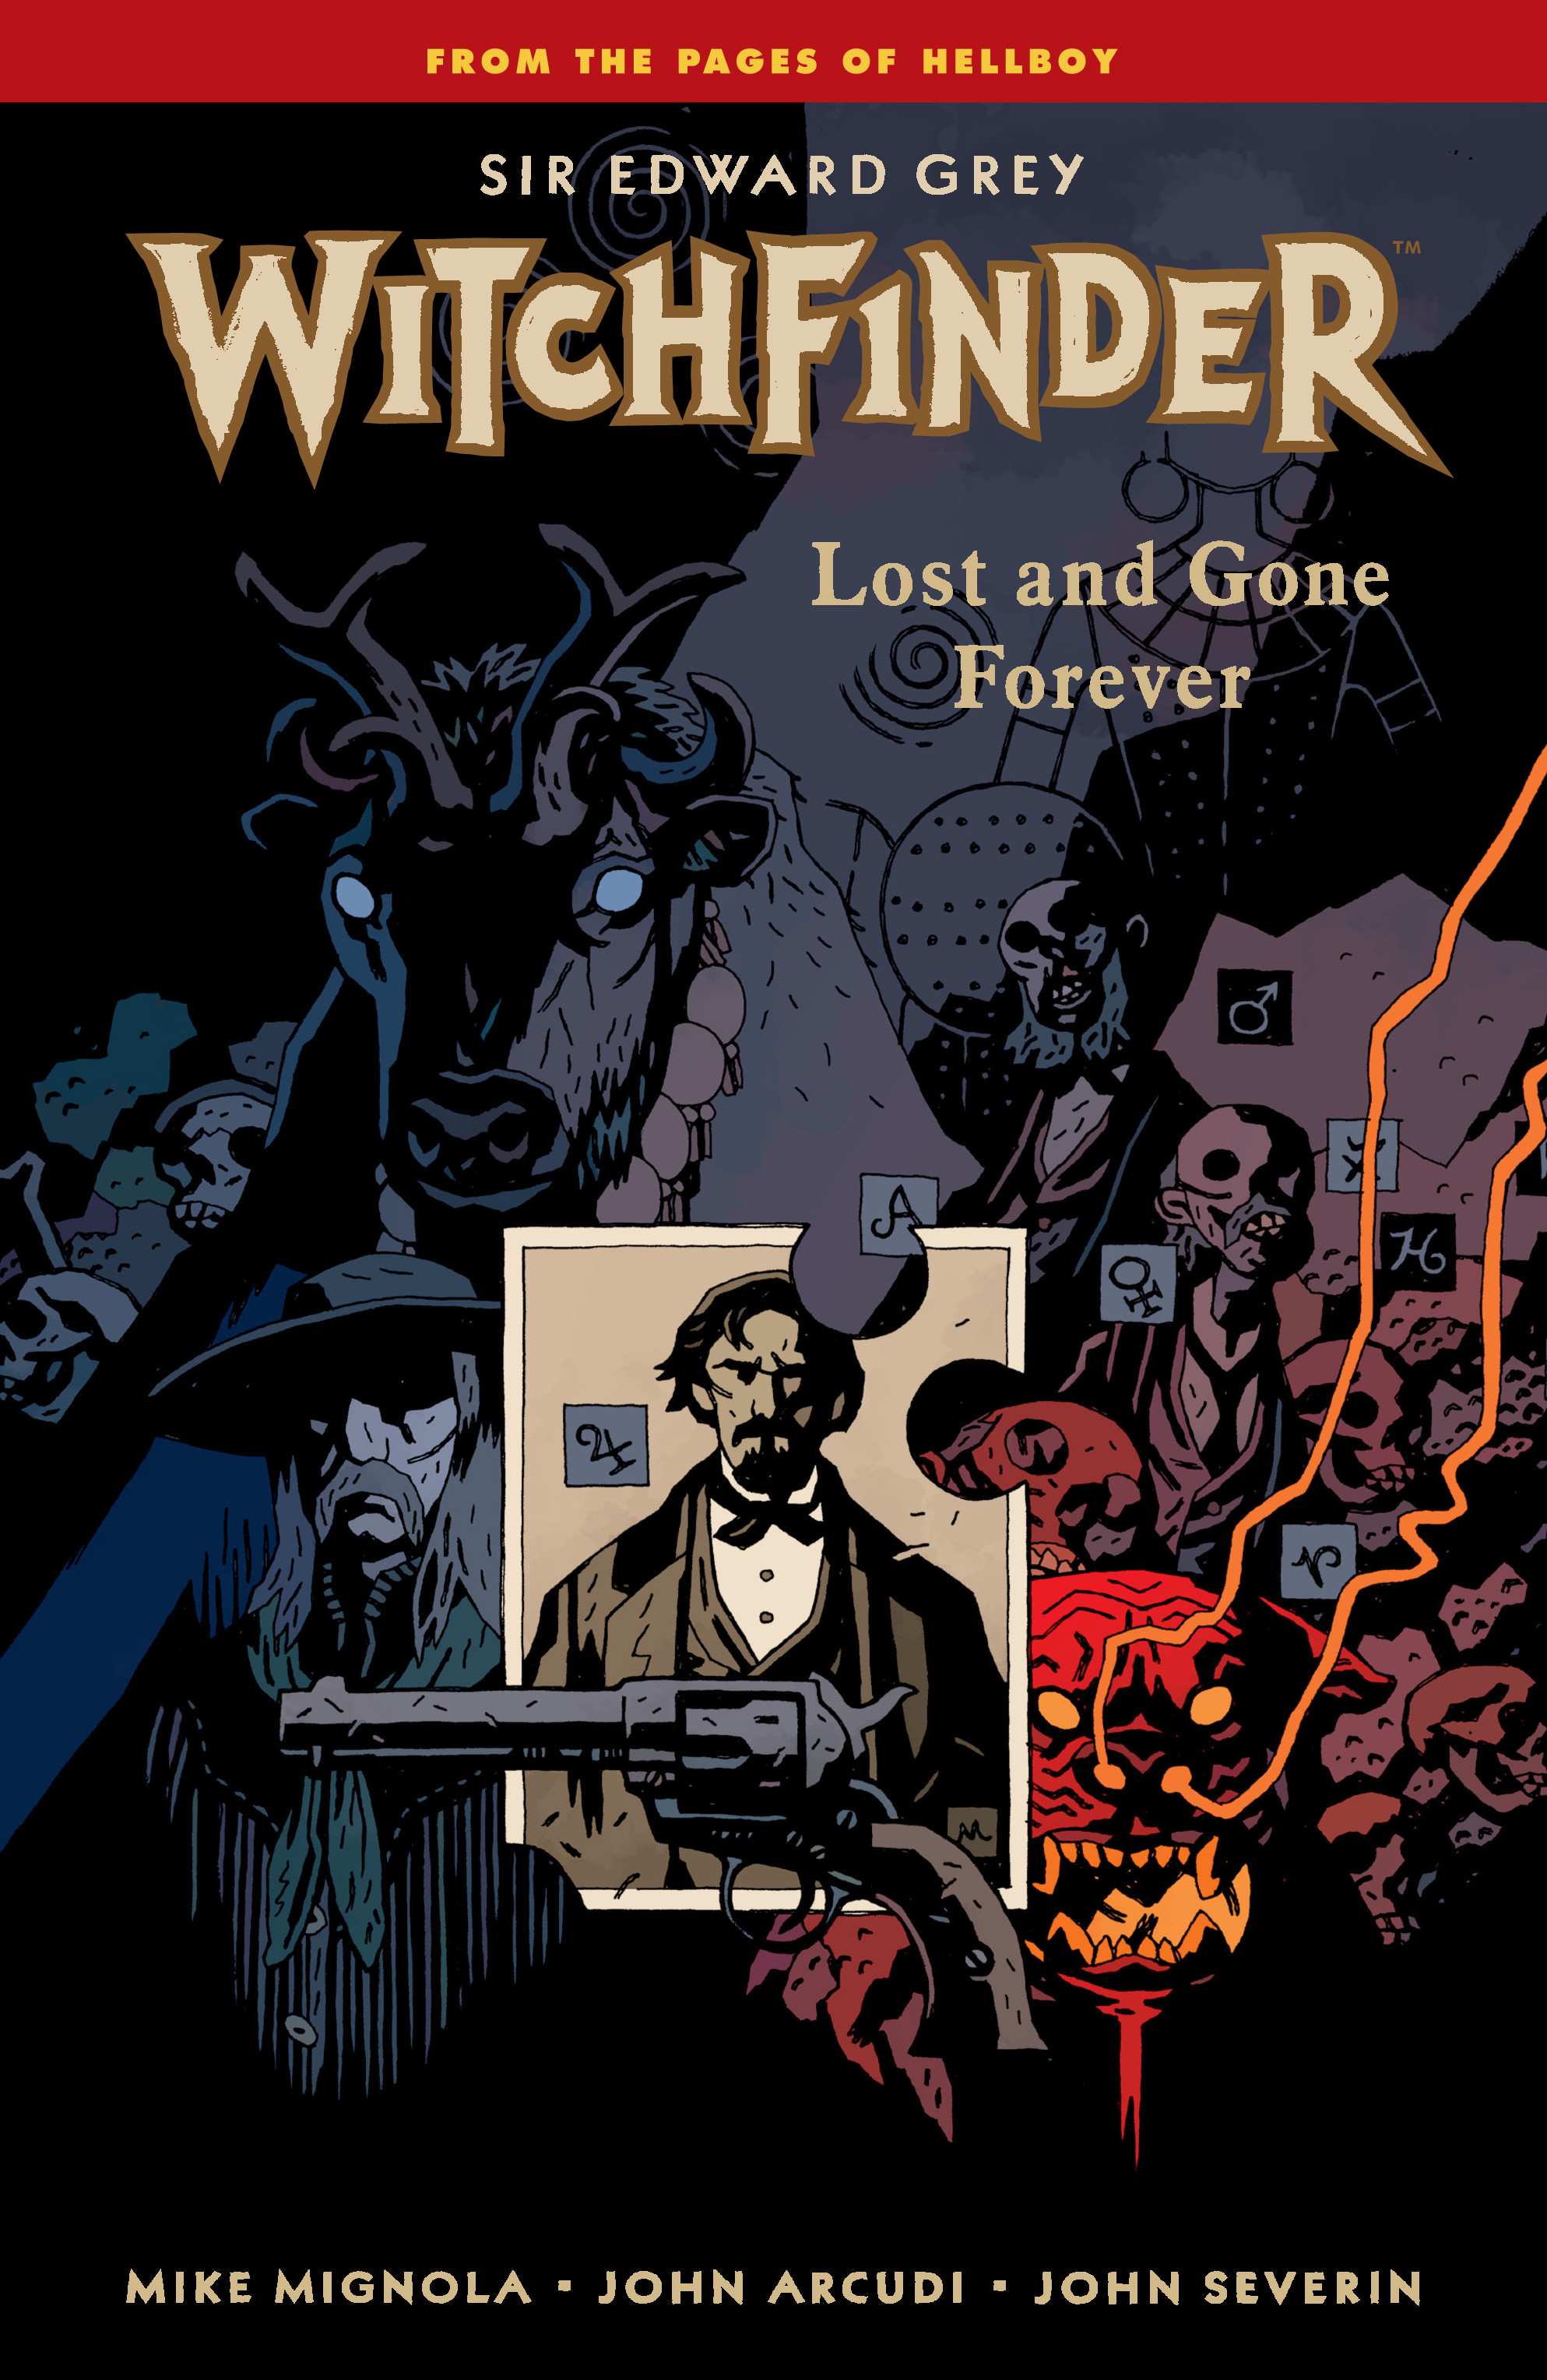 Read online Sir Edward Grey, Witchfinder: Lost and Gone Forever comic -  Issue # TPB - 1